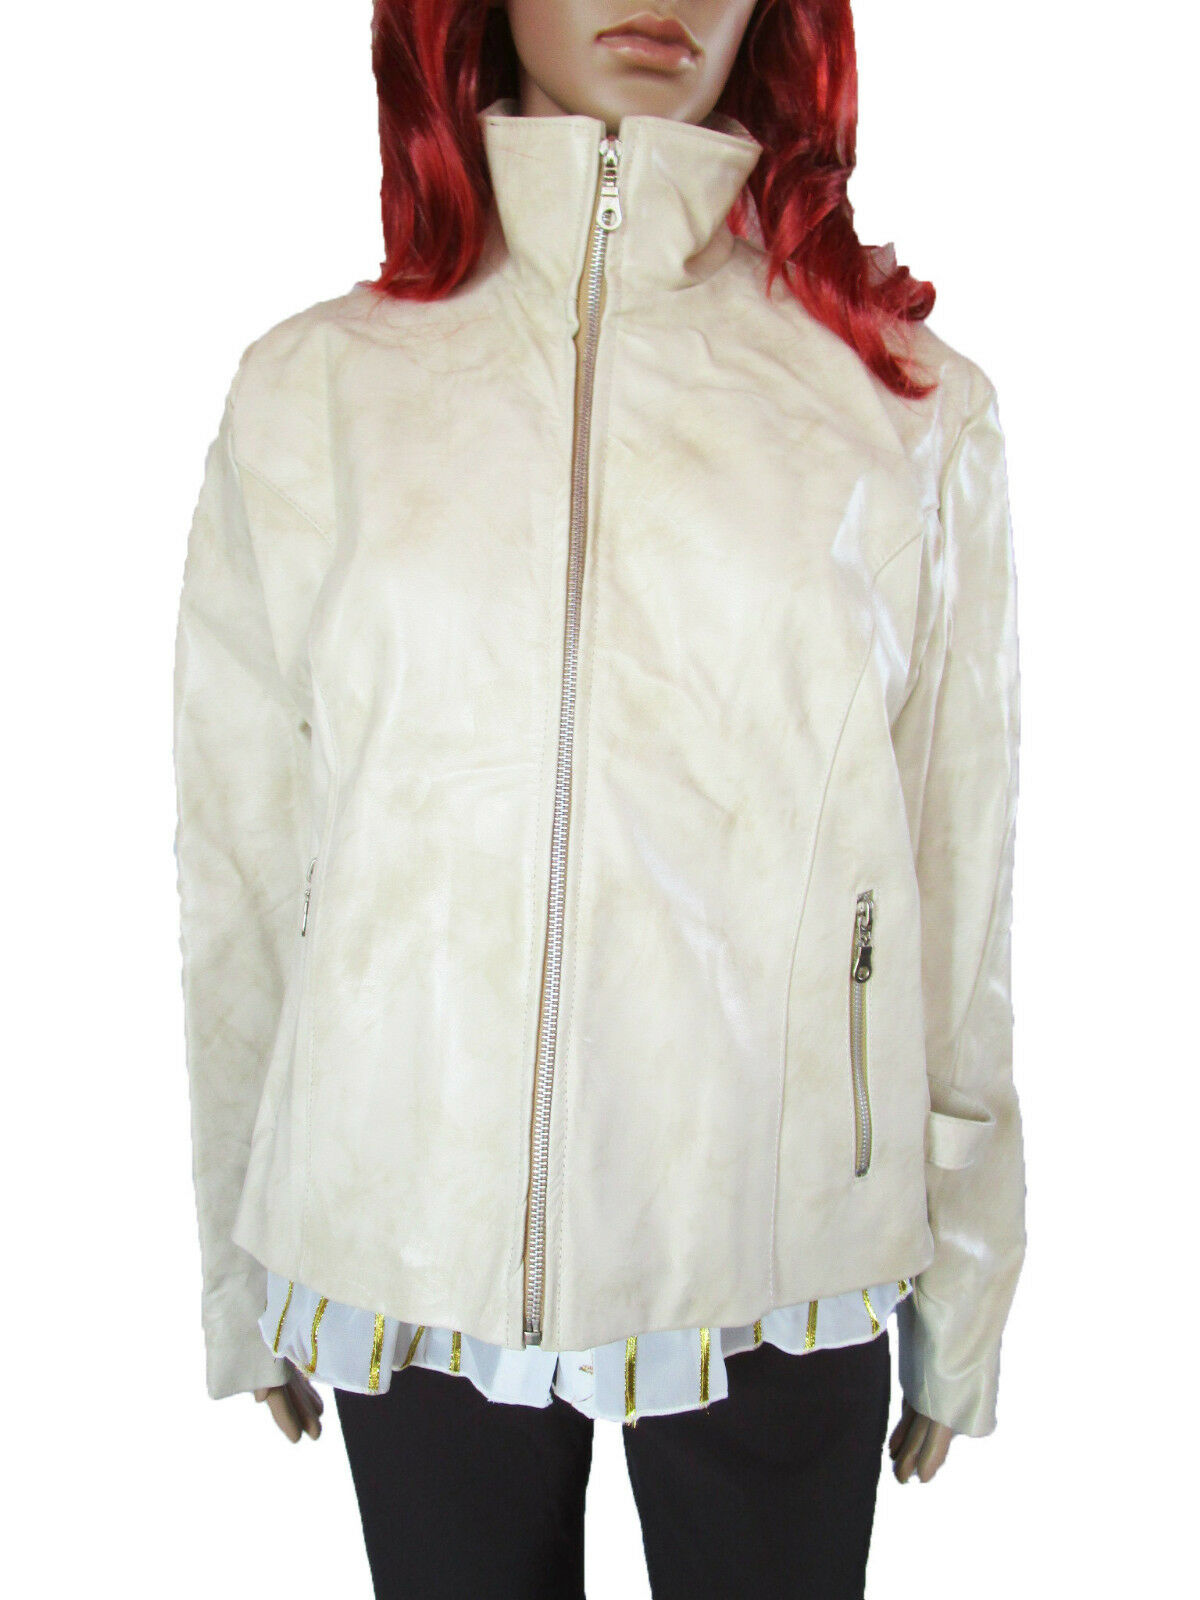 Vtg Retro 80s damänner Casual leder Made in  Ivory Zip jacke sz 2XL AP52